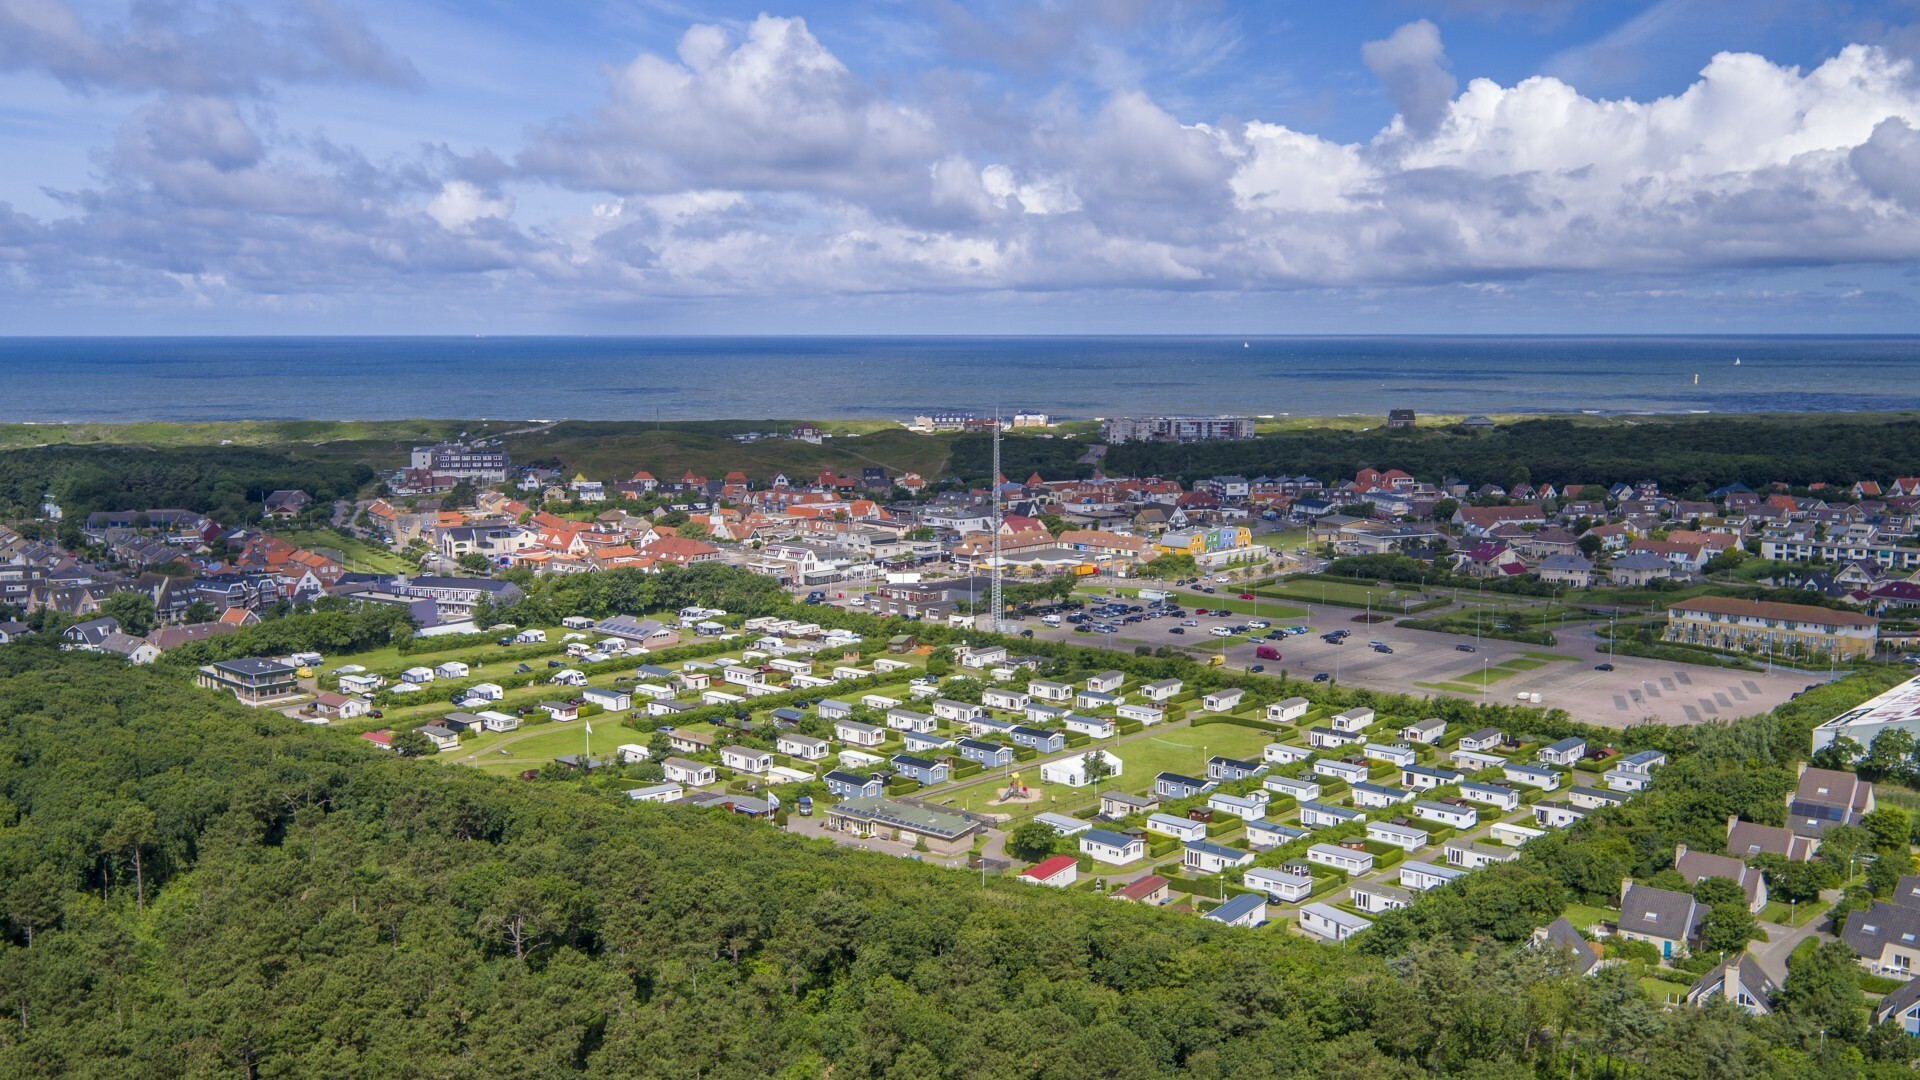 Luchtfoto camping Coogherveld Texel VVV Texel